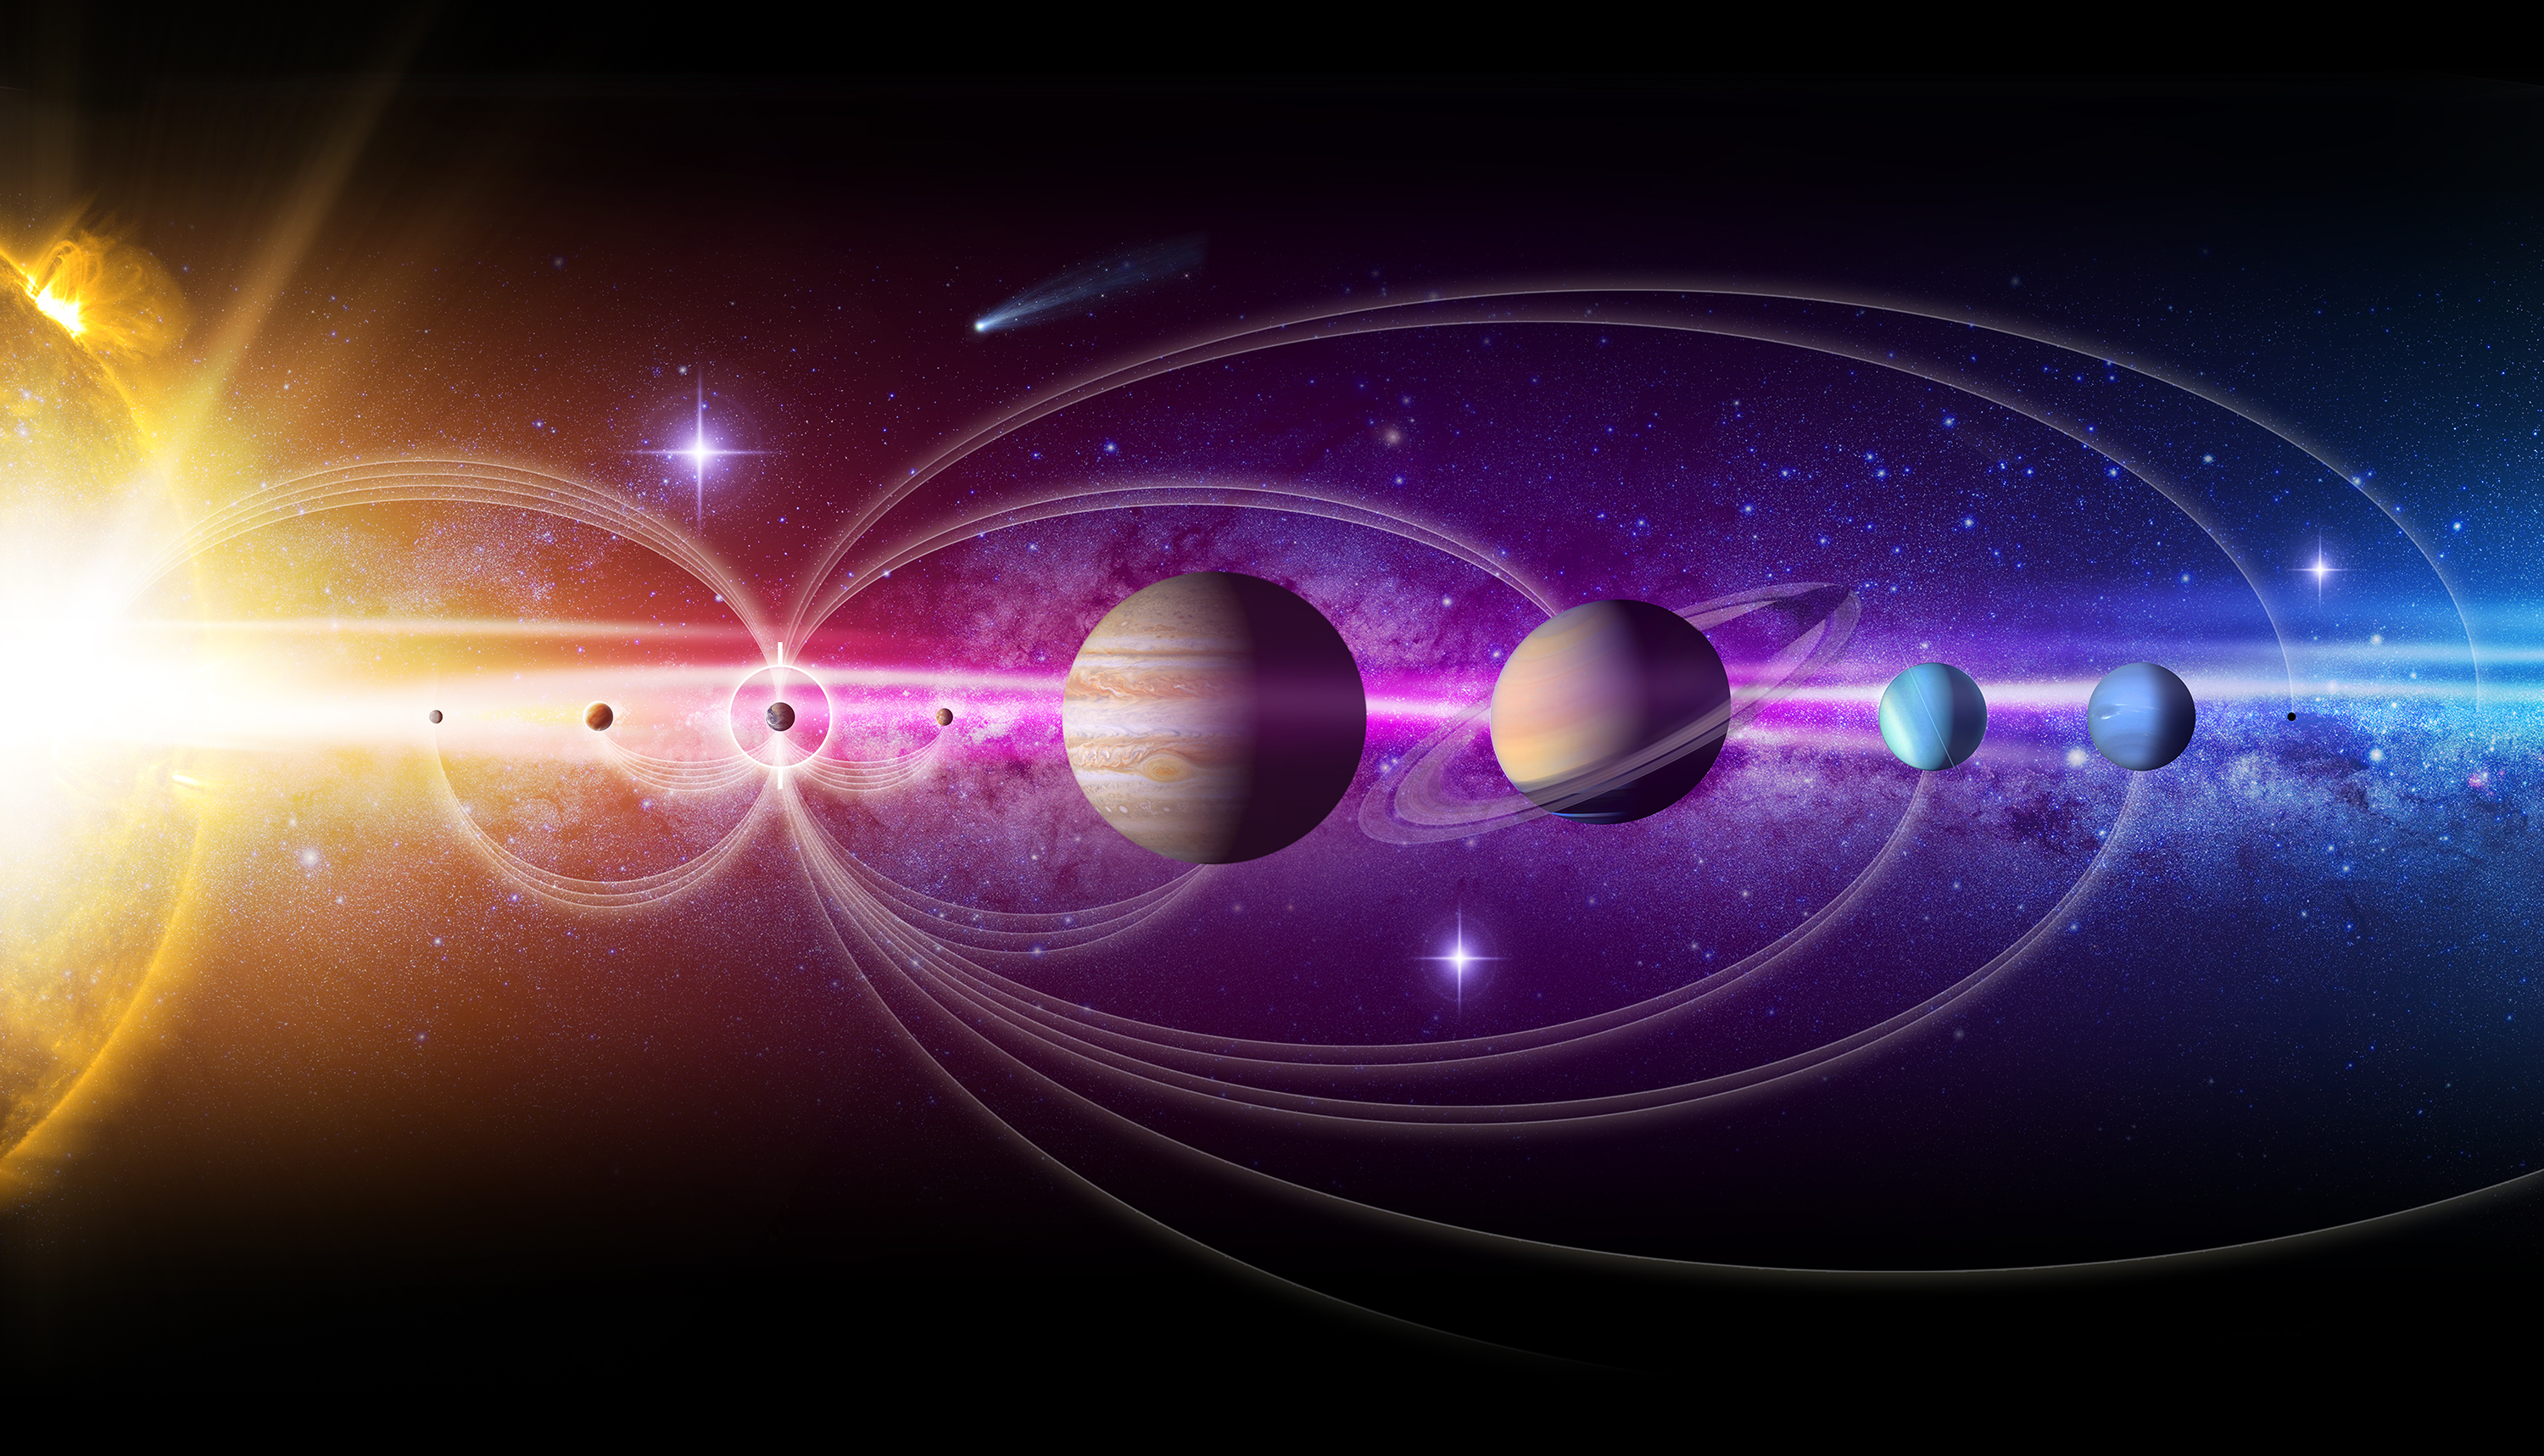 Artist S Concept Our Solar System